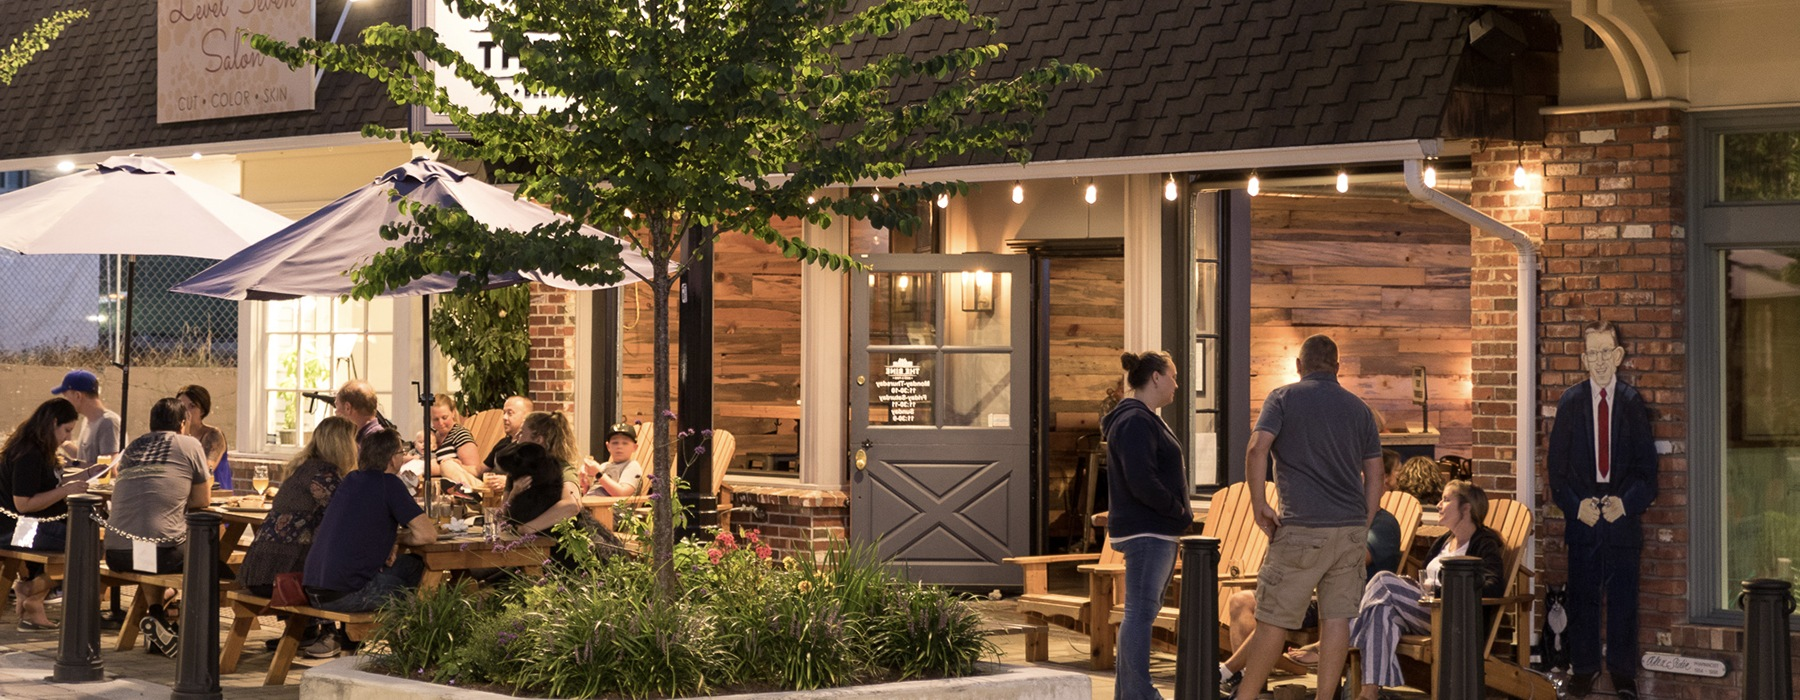 Walkable Downtown Bothell restaurants & retail.